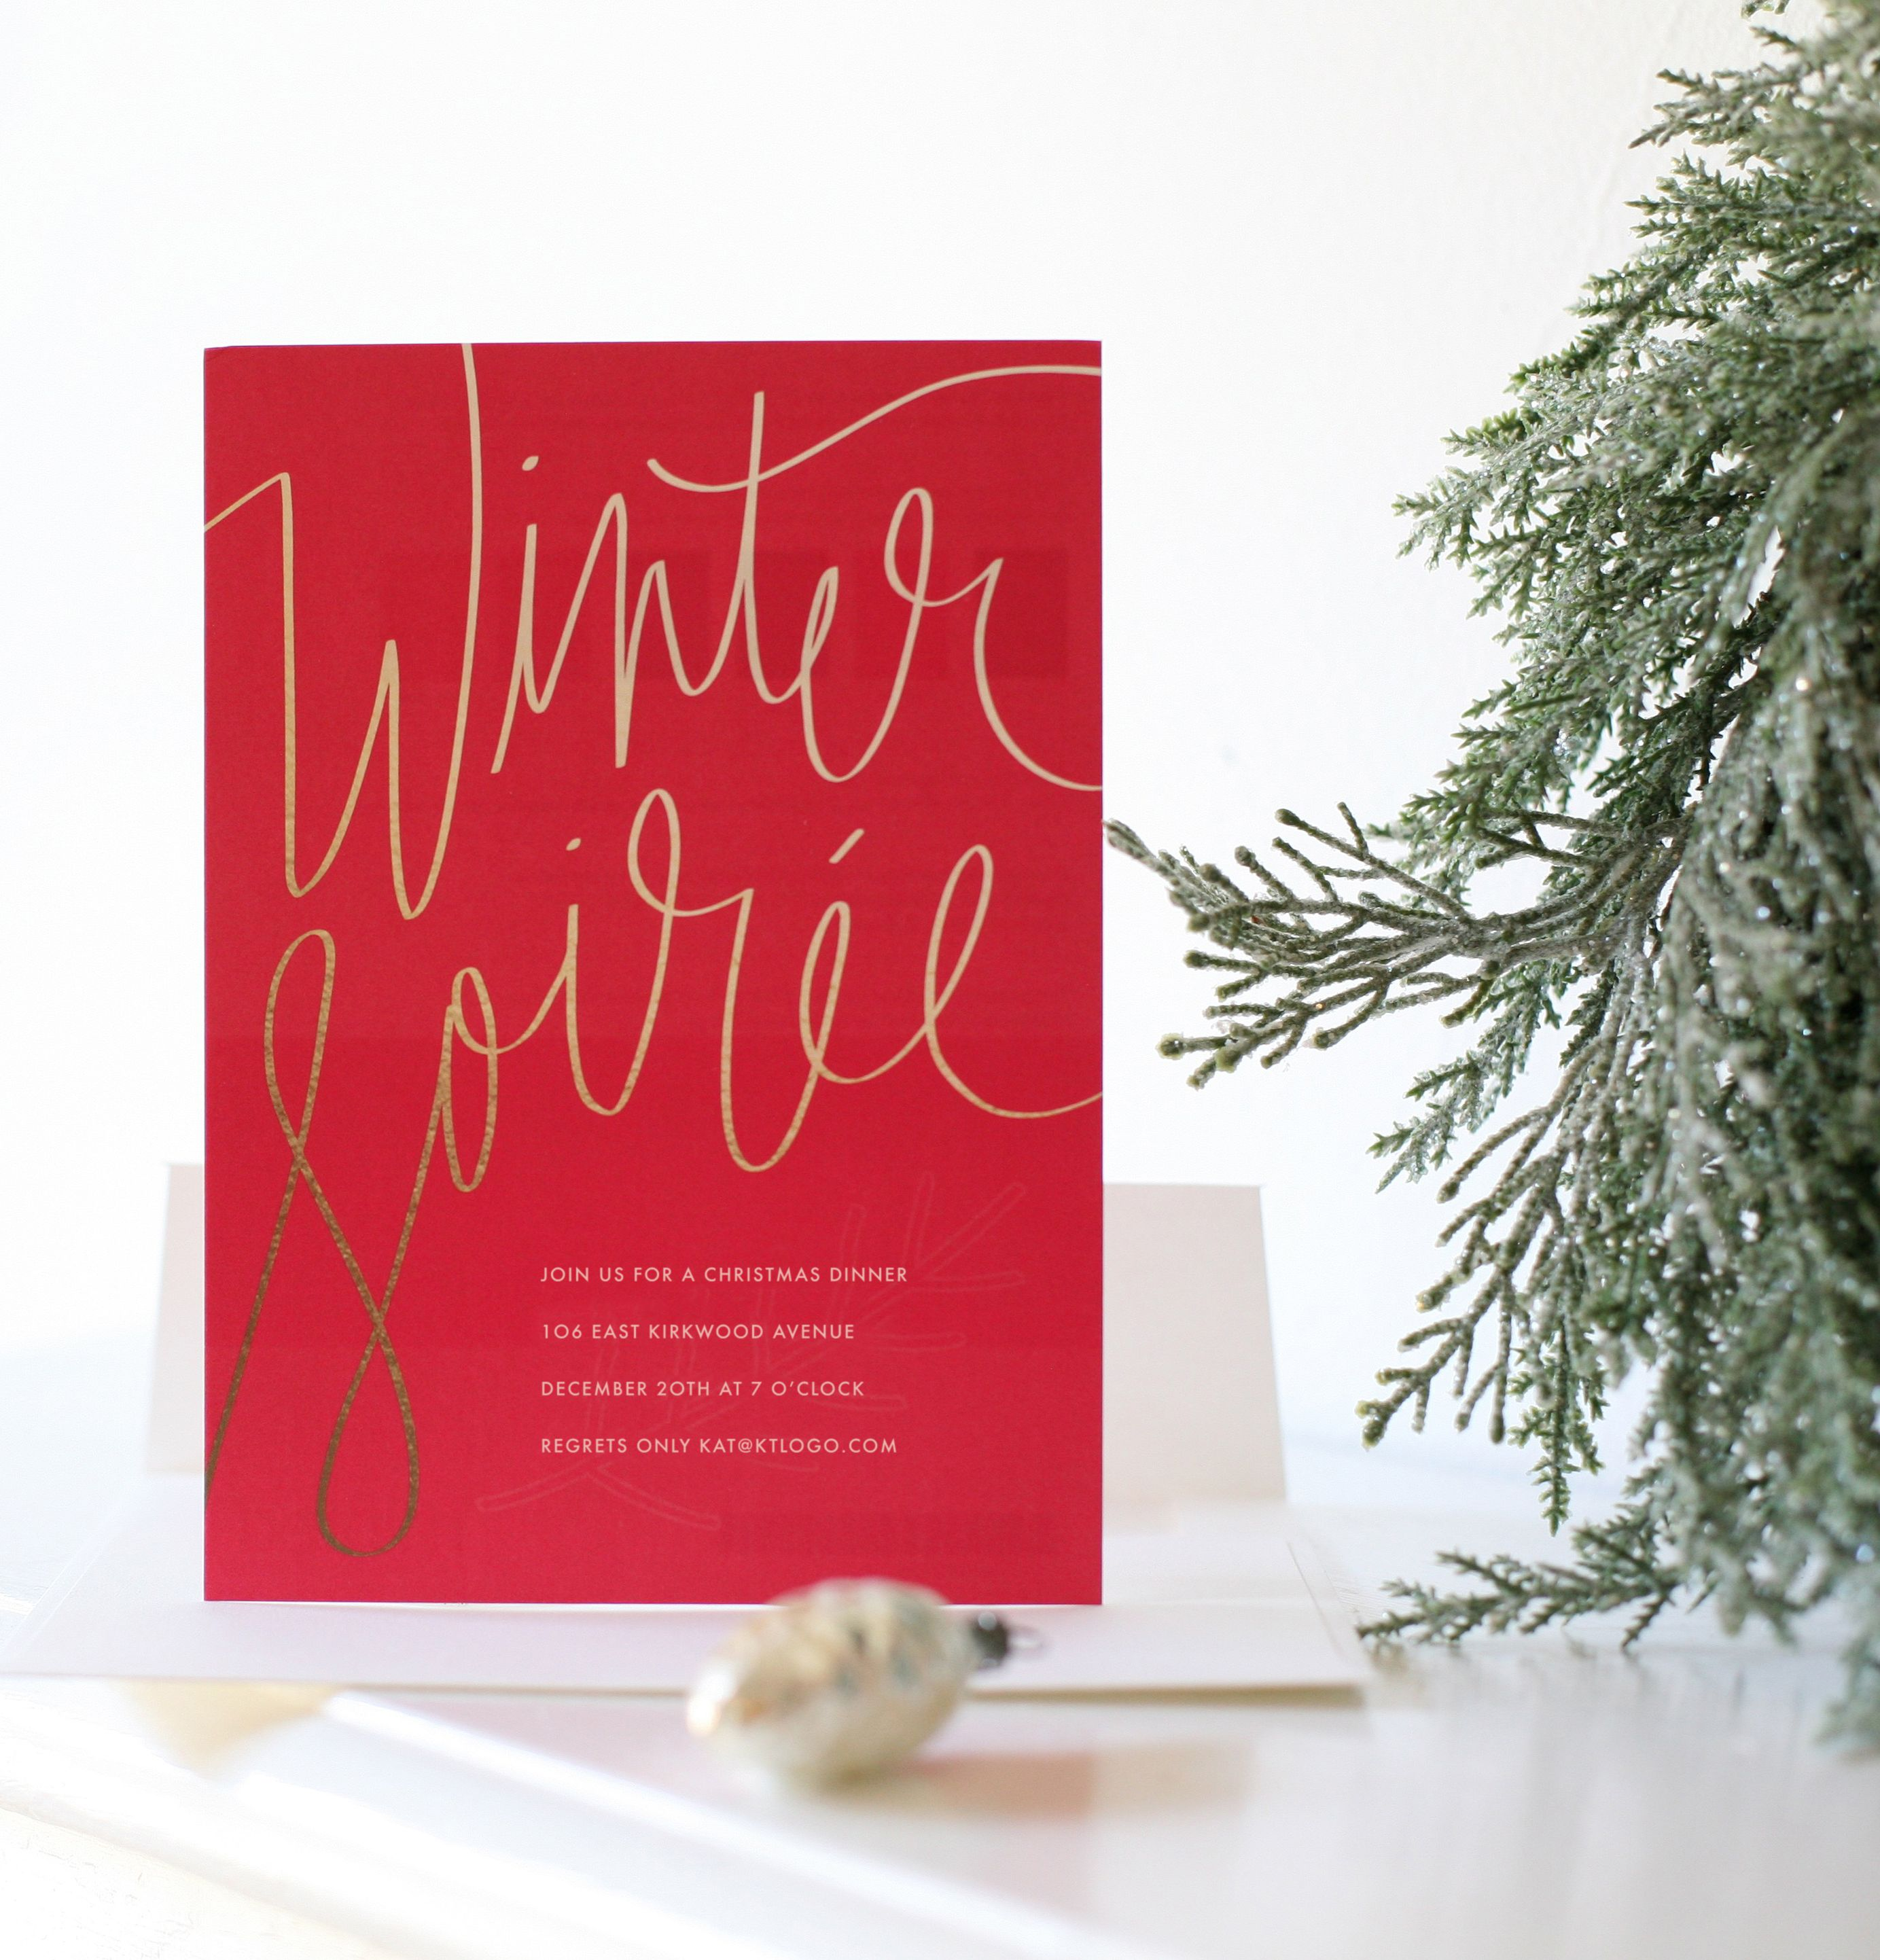 Minted Christmas Dinner Invitation: Plan a Winter Soiree Party Theme ...